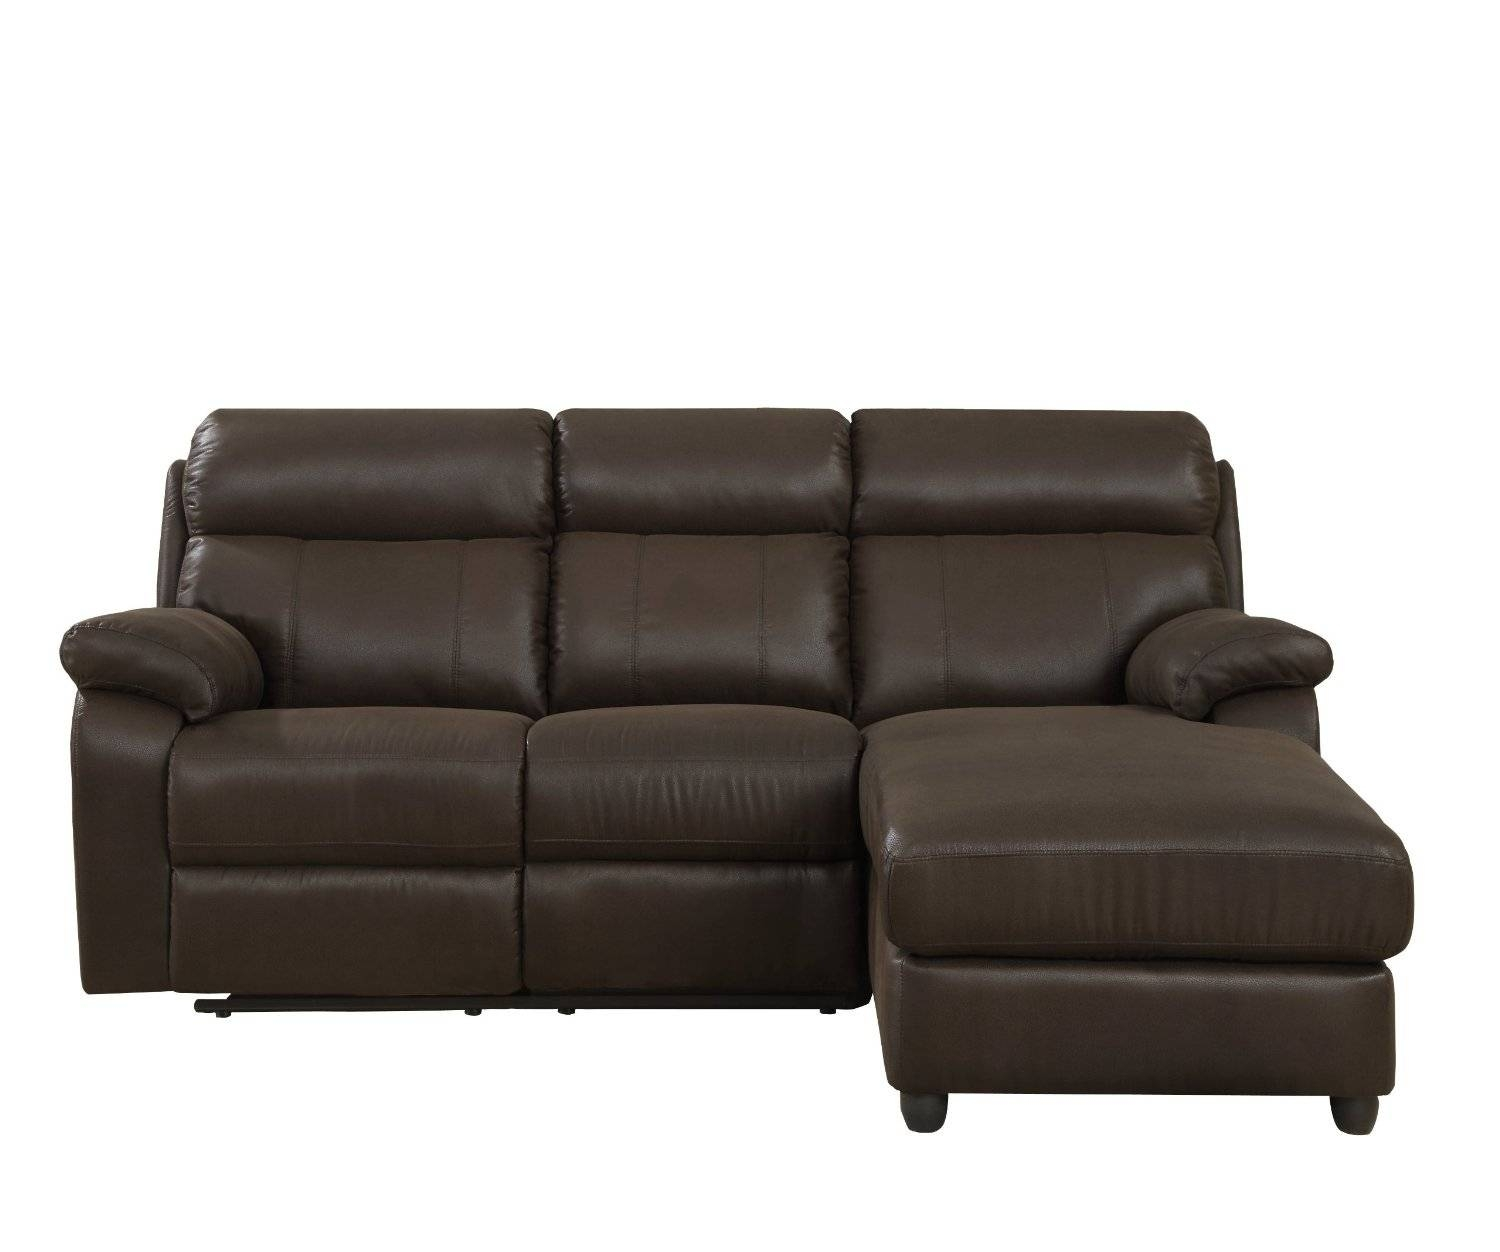 Charmant Piece Small Leather Sectional Sofa With Reclining Back Chaise